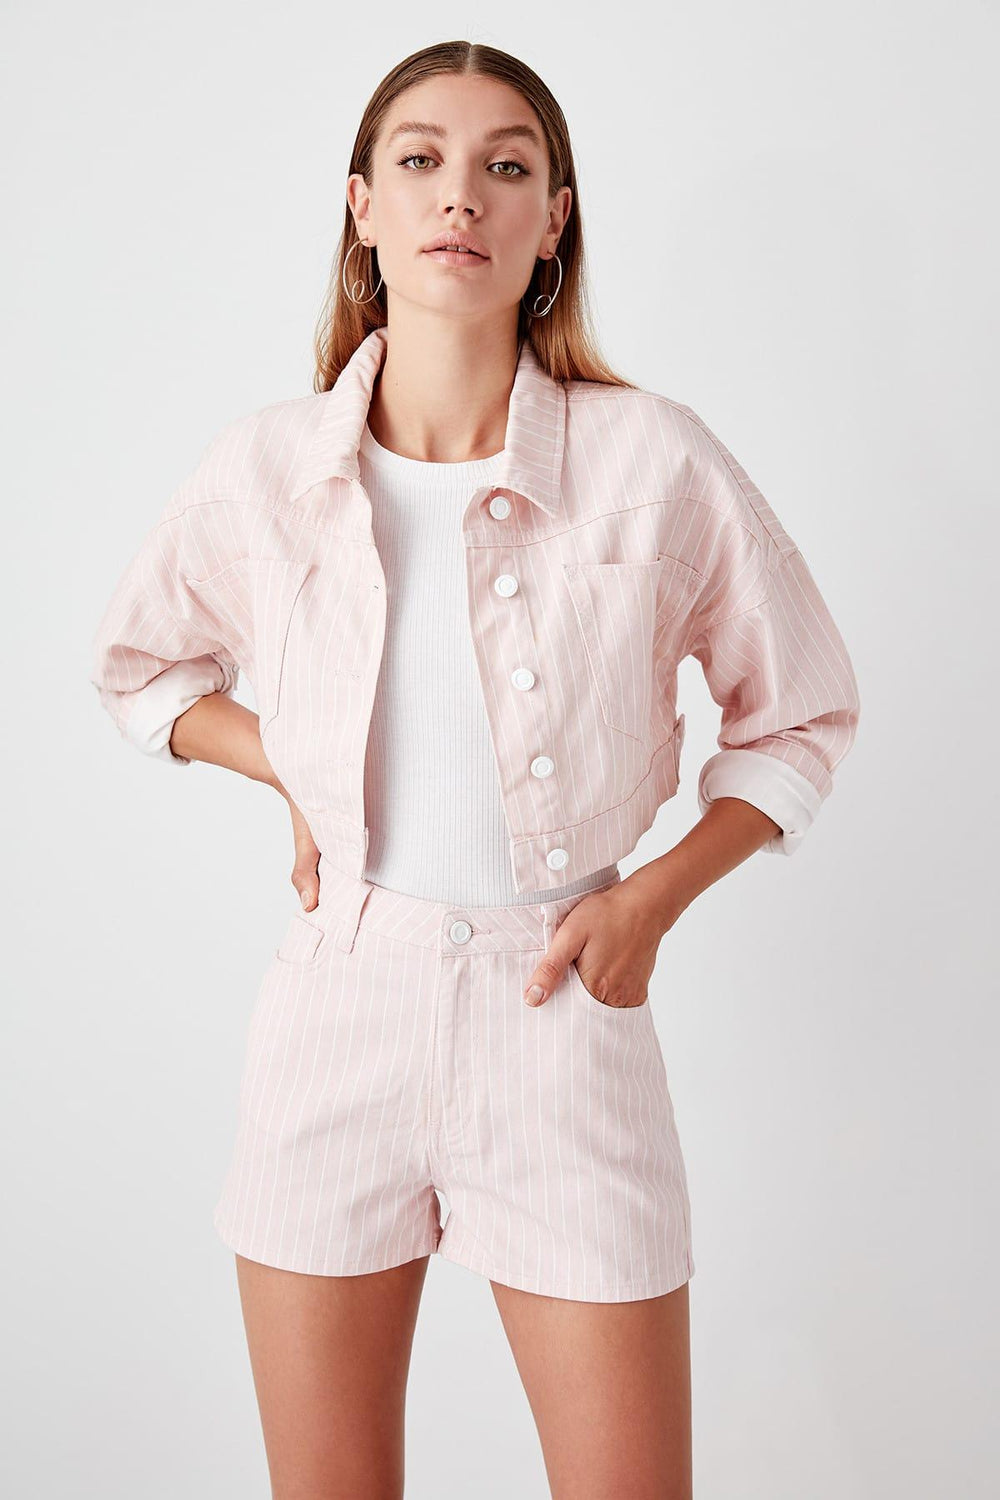 Pink Striped Denim Shorts - Top Maxy